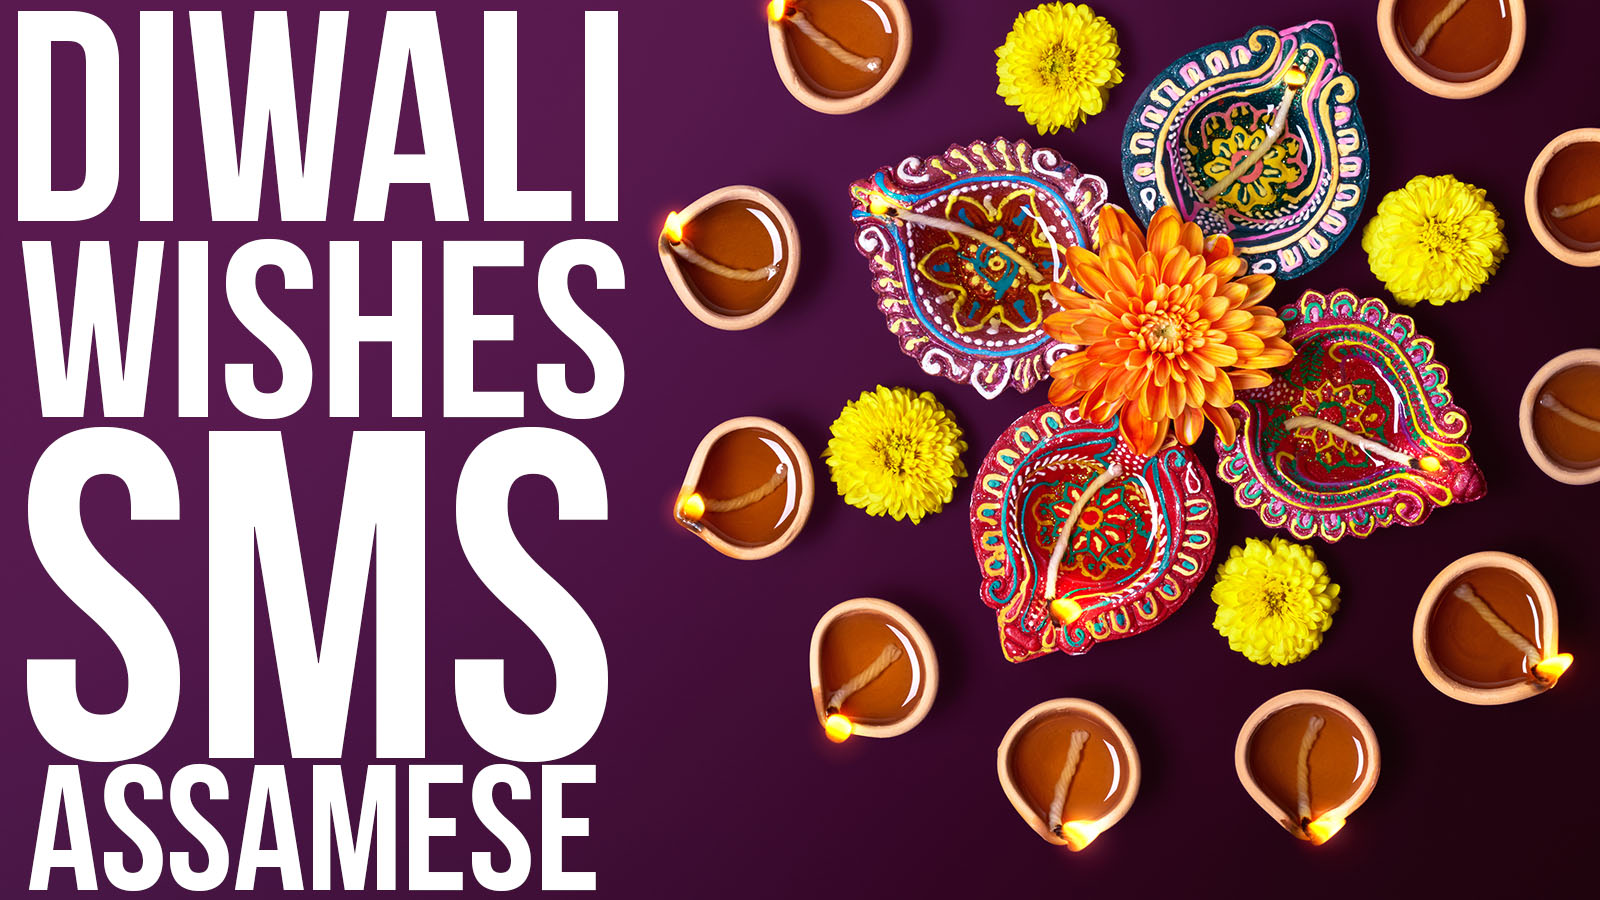 Diwali Wishes, SMS, Status, Quotes in Assamese